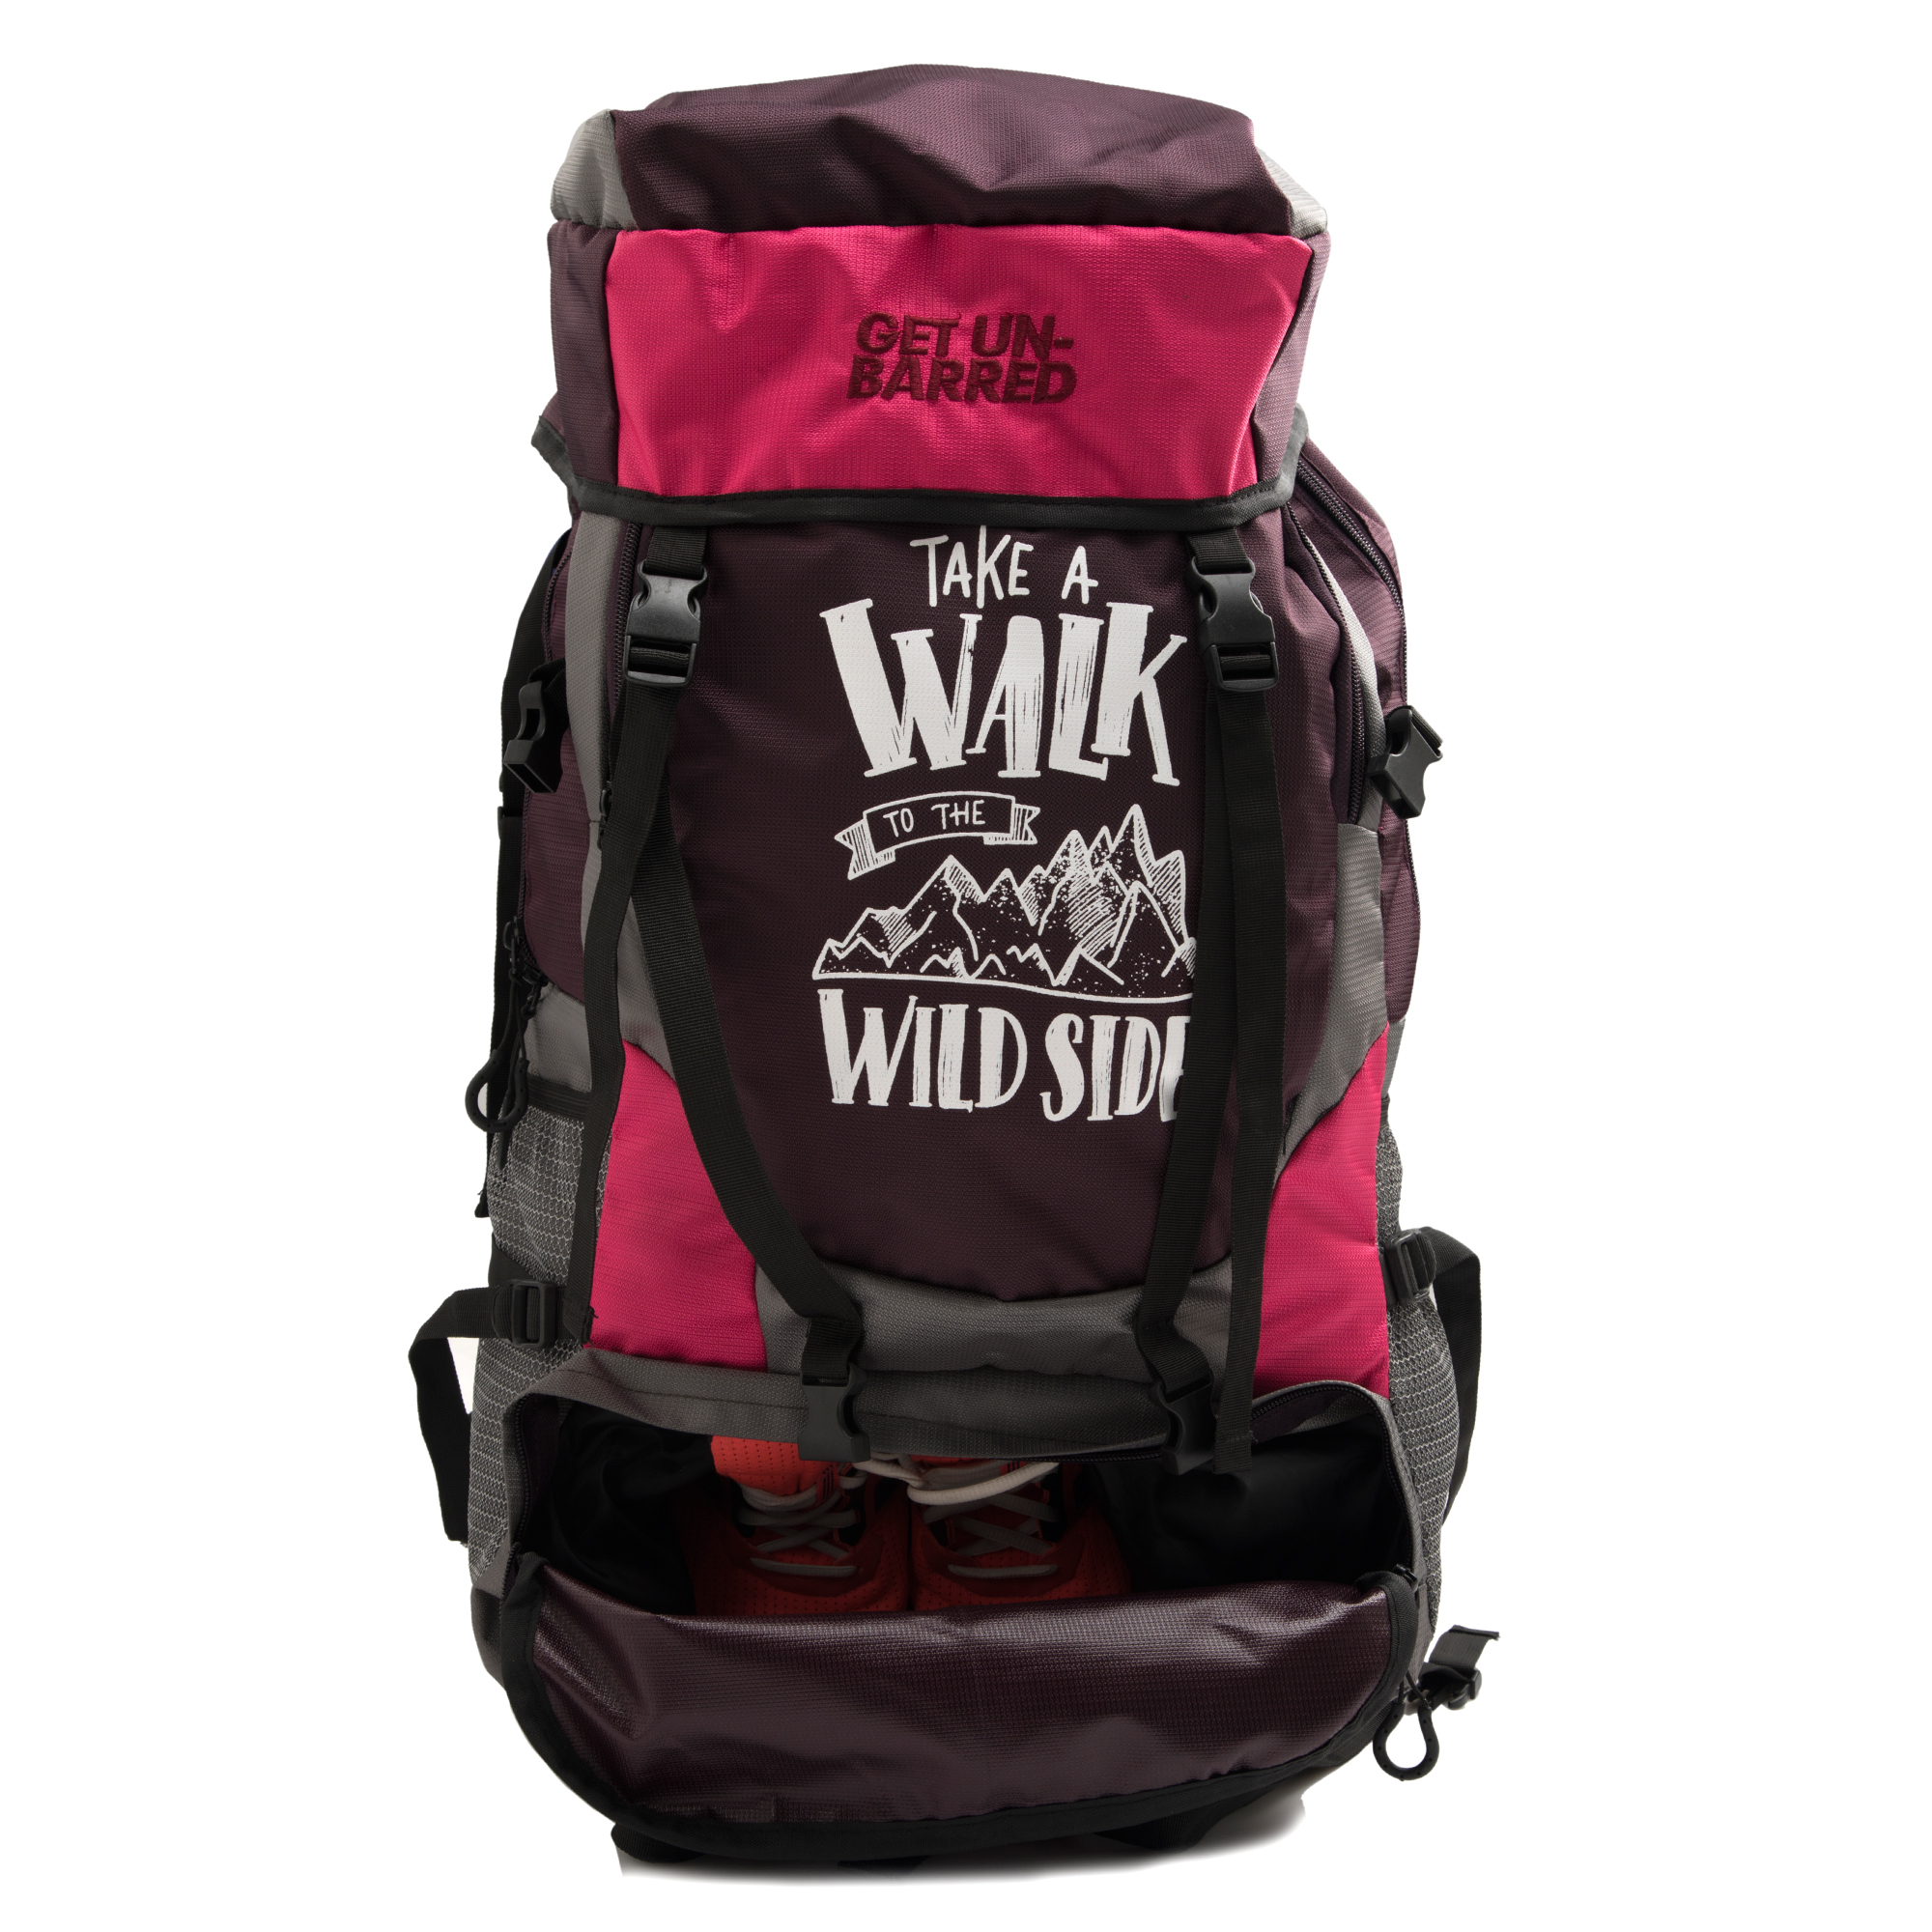 fc1e6e7a496d Get Unbarred Adventure Stylish Series 55 Ltr Large Capacity Bag For  Trekking Hiking Camping And Travel Backpack - Brown pink - Buy Hiking Sling  Bag